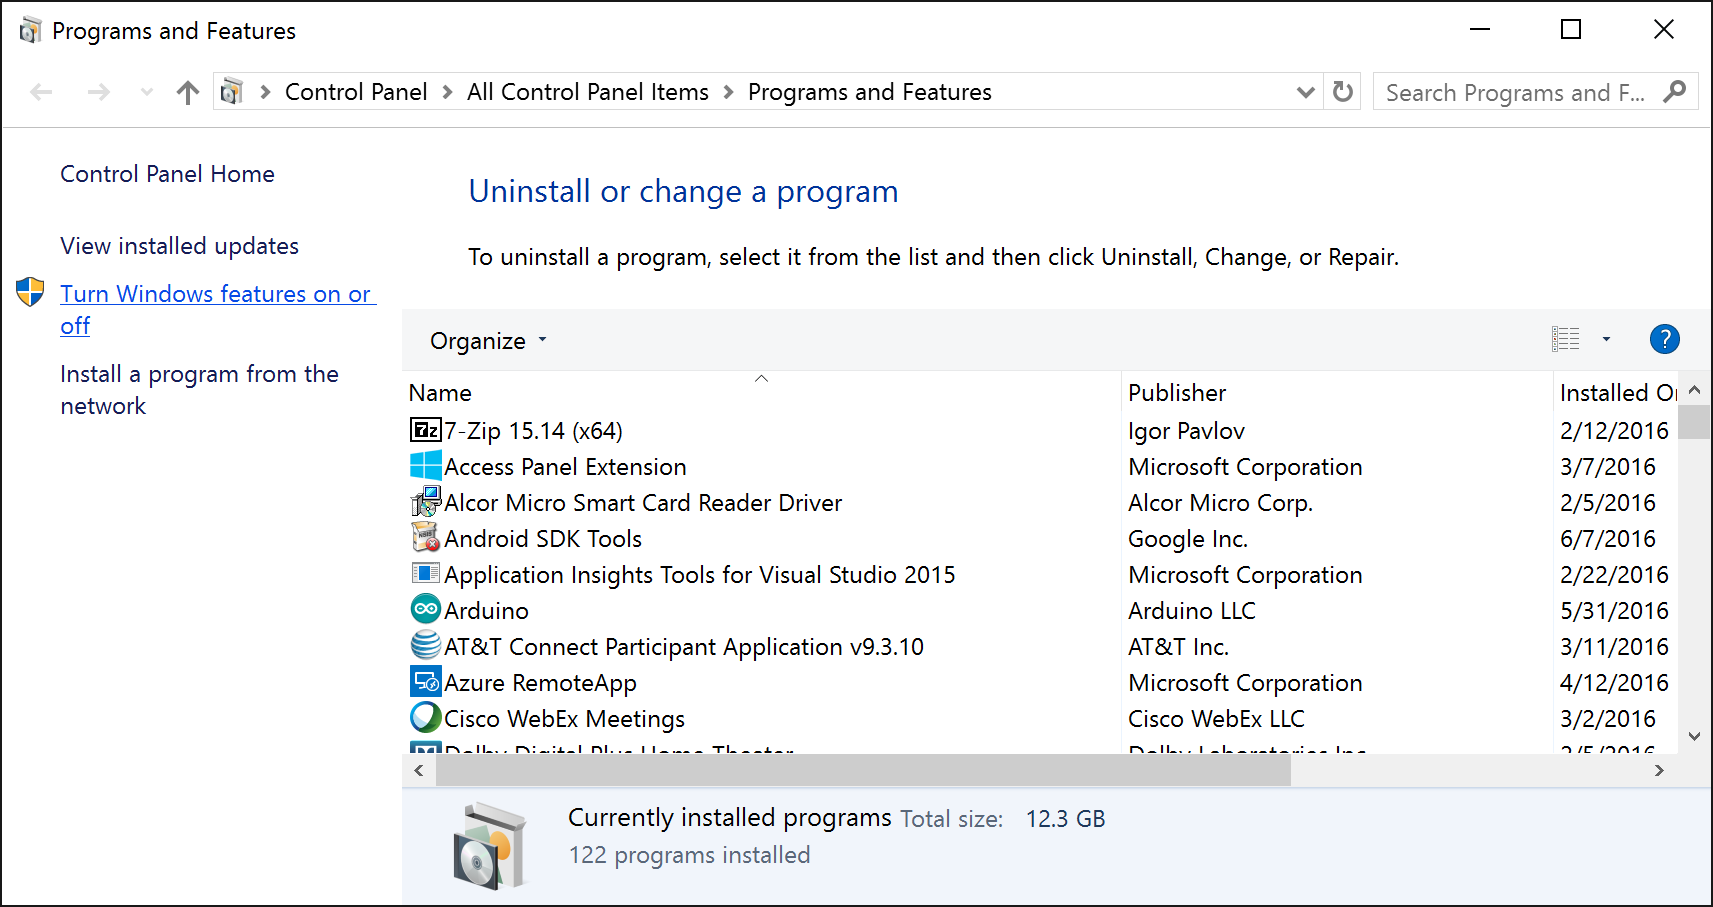 Control Panel - Programs and Features - Turn windows features on or off